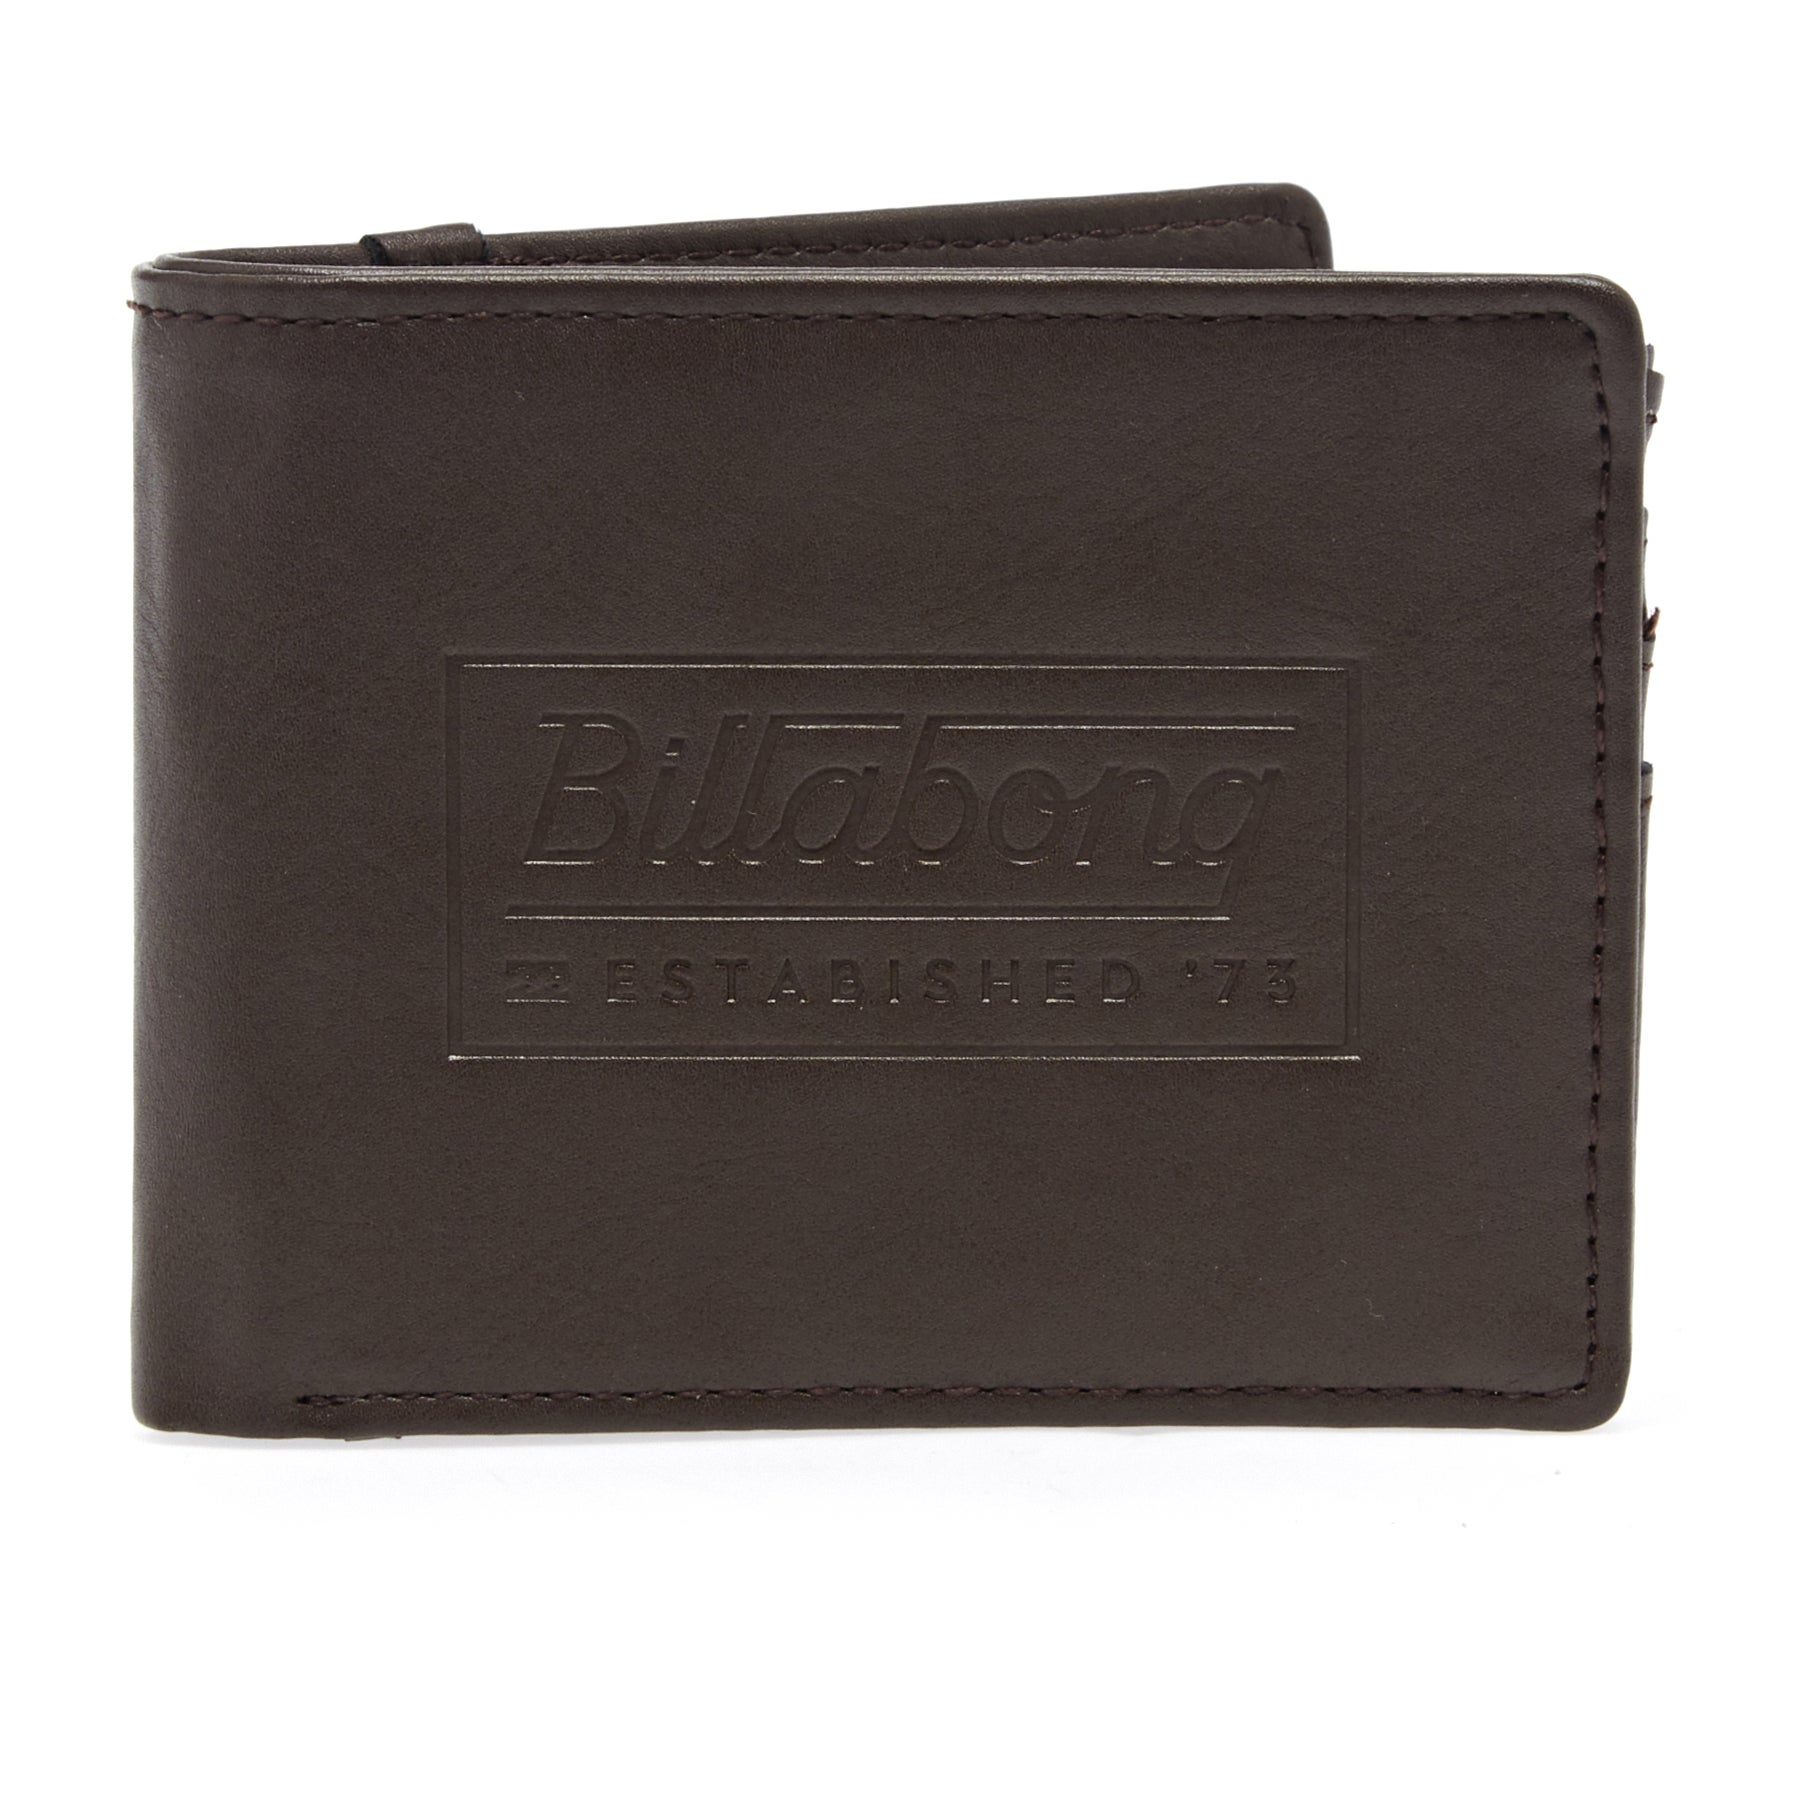 Billetera Billabong Walled - Chocolate